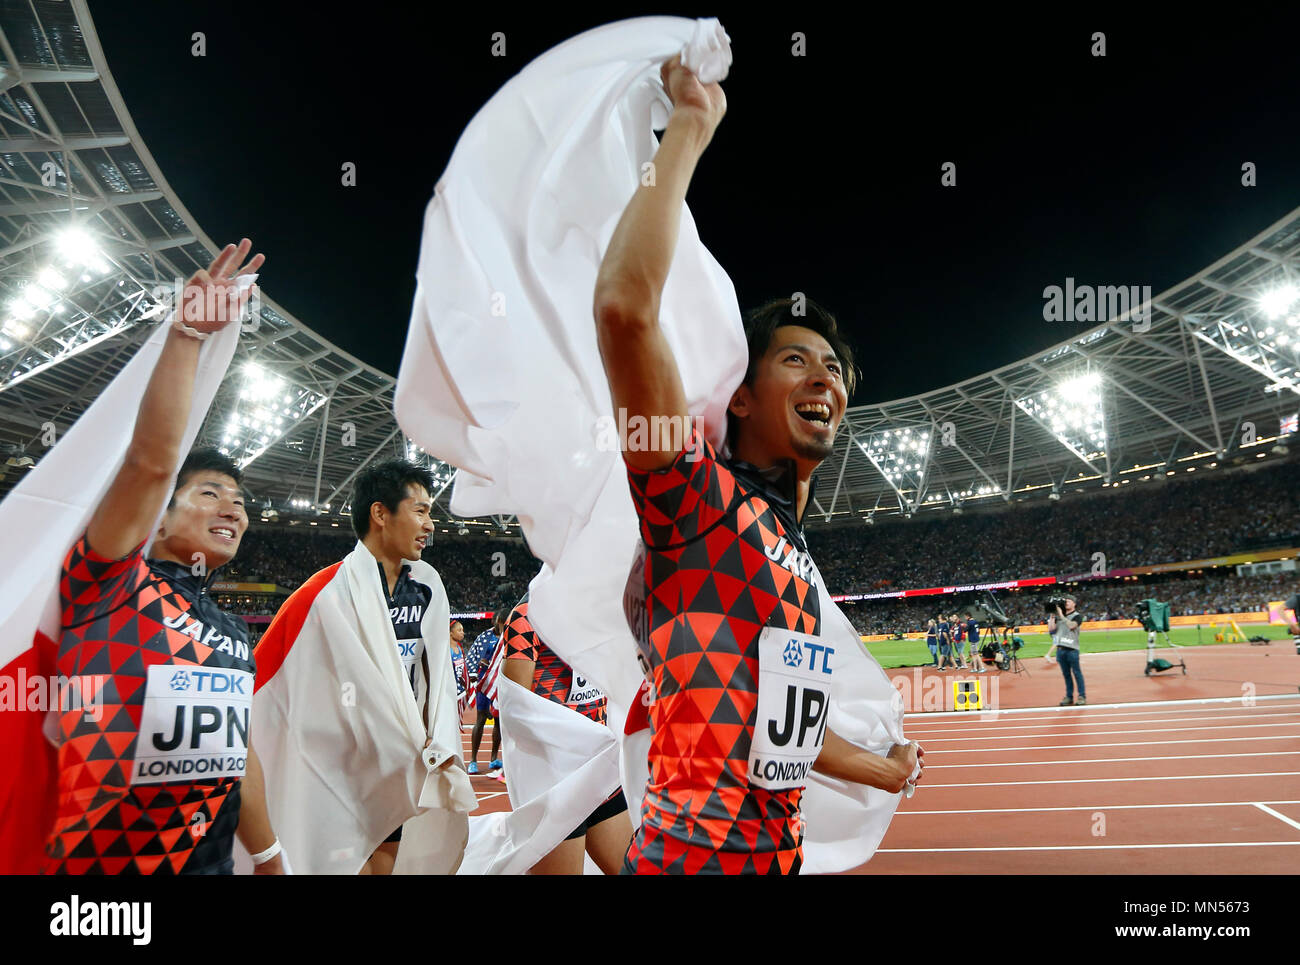 LONDON, ENGLAND - AUGUST 12: Shuhei Tada, Shota Iizuka, Yoshihide Kiryu and Kenji Fujimitsu of Japan celebrate winning bronze in the Men's 4x100 Relay final during day nine of the 16th IAAF World Athletics Championships London 2017 at The London Stadium on August 12, 2017 in London, United Kingdom --- Image by © Paul Cunningham - Stock Image